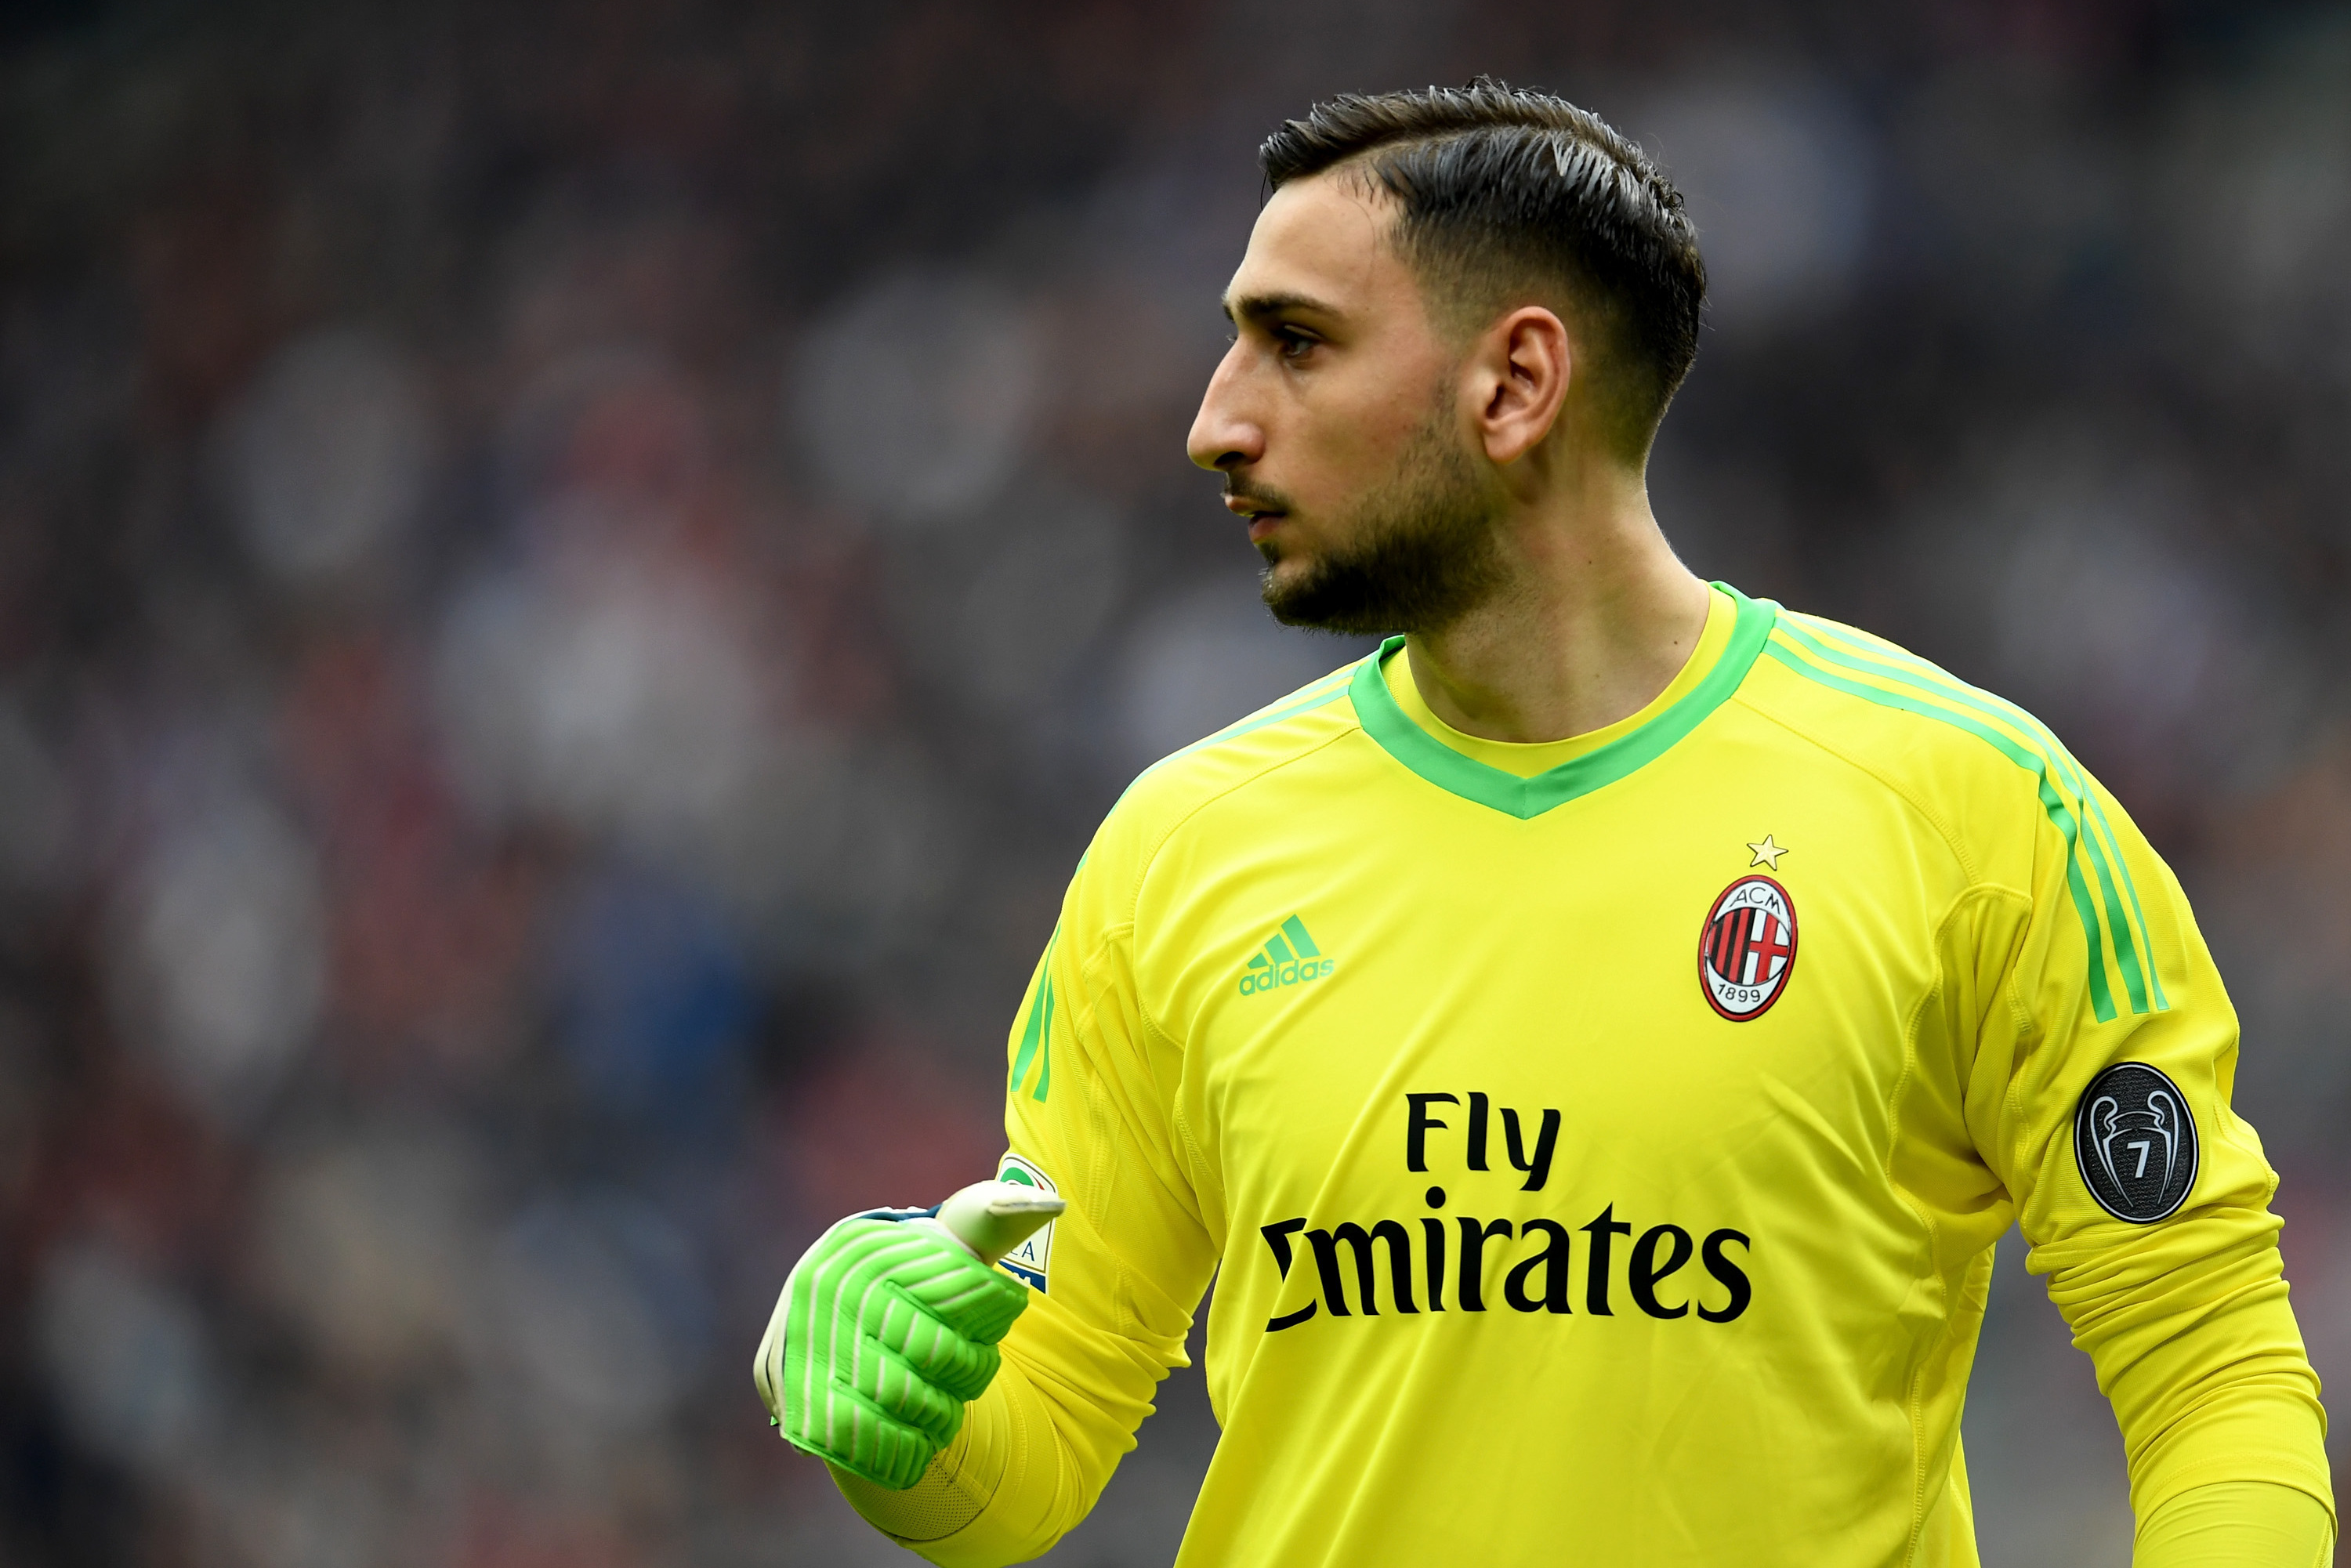 Report: PSG in Negotiations to Sign €60M Gianluigi Donnarumma from AC Milan   Bleacher Report   Latest News, Videos and Highlights